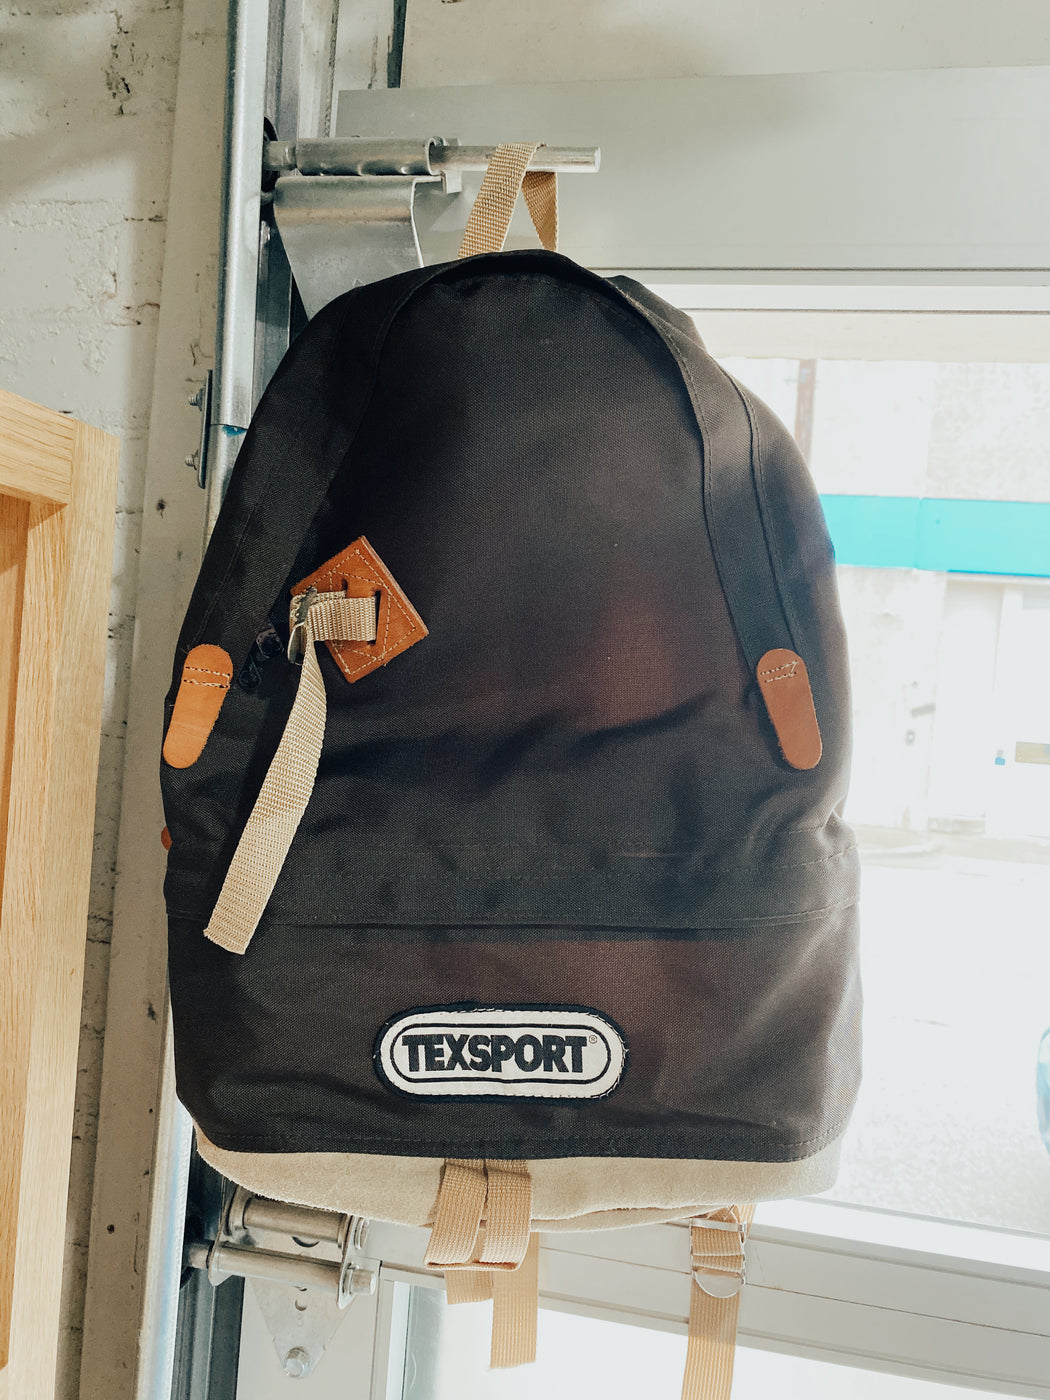 Texsport Backpack